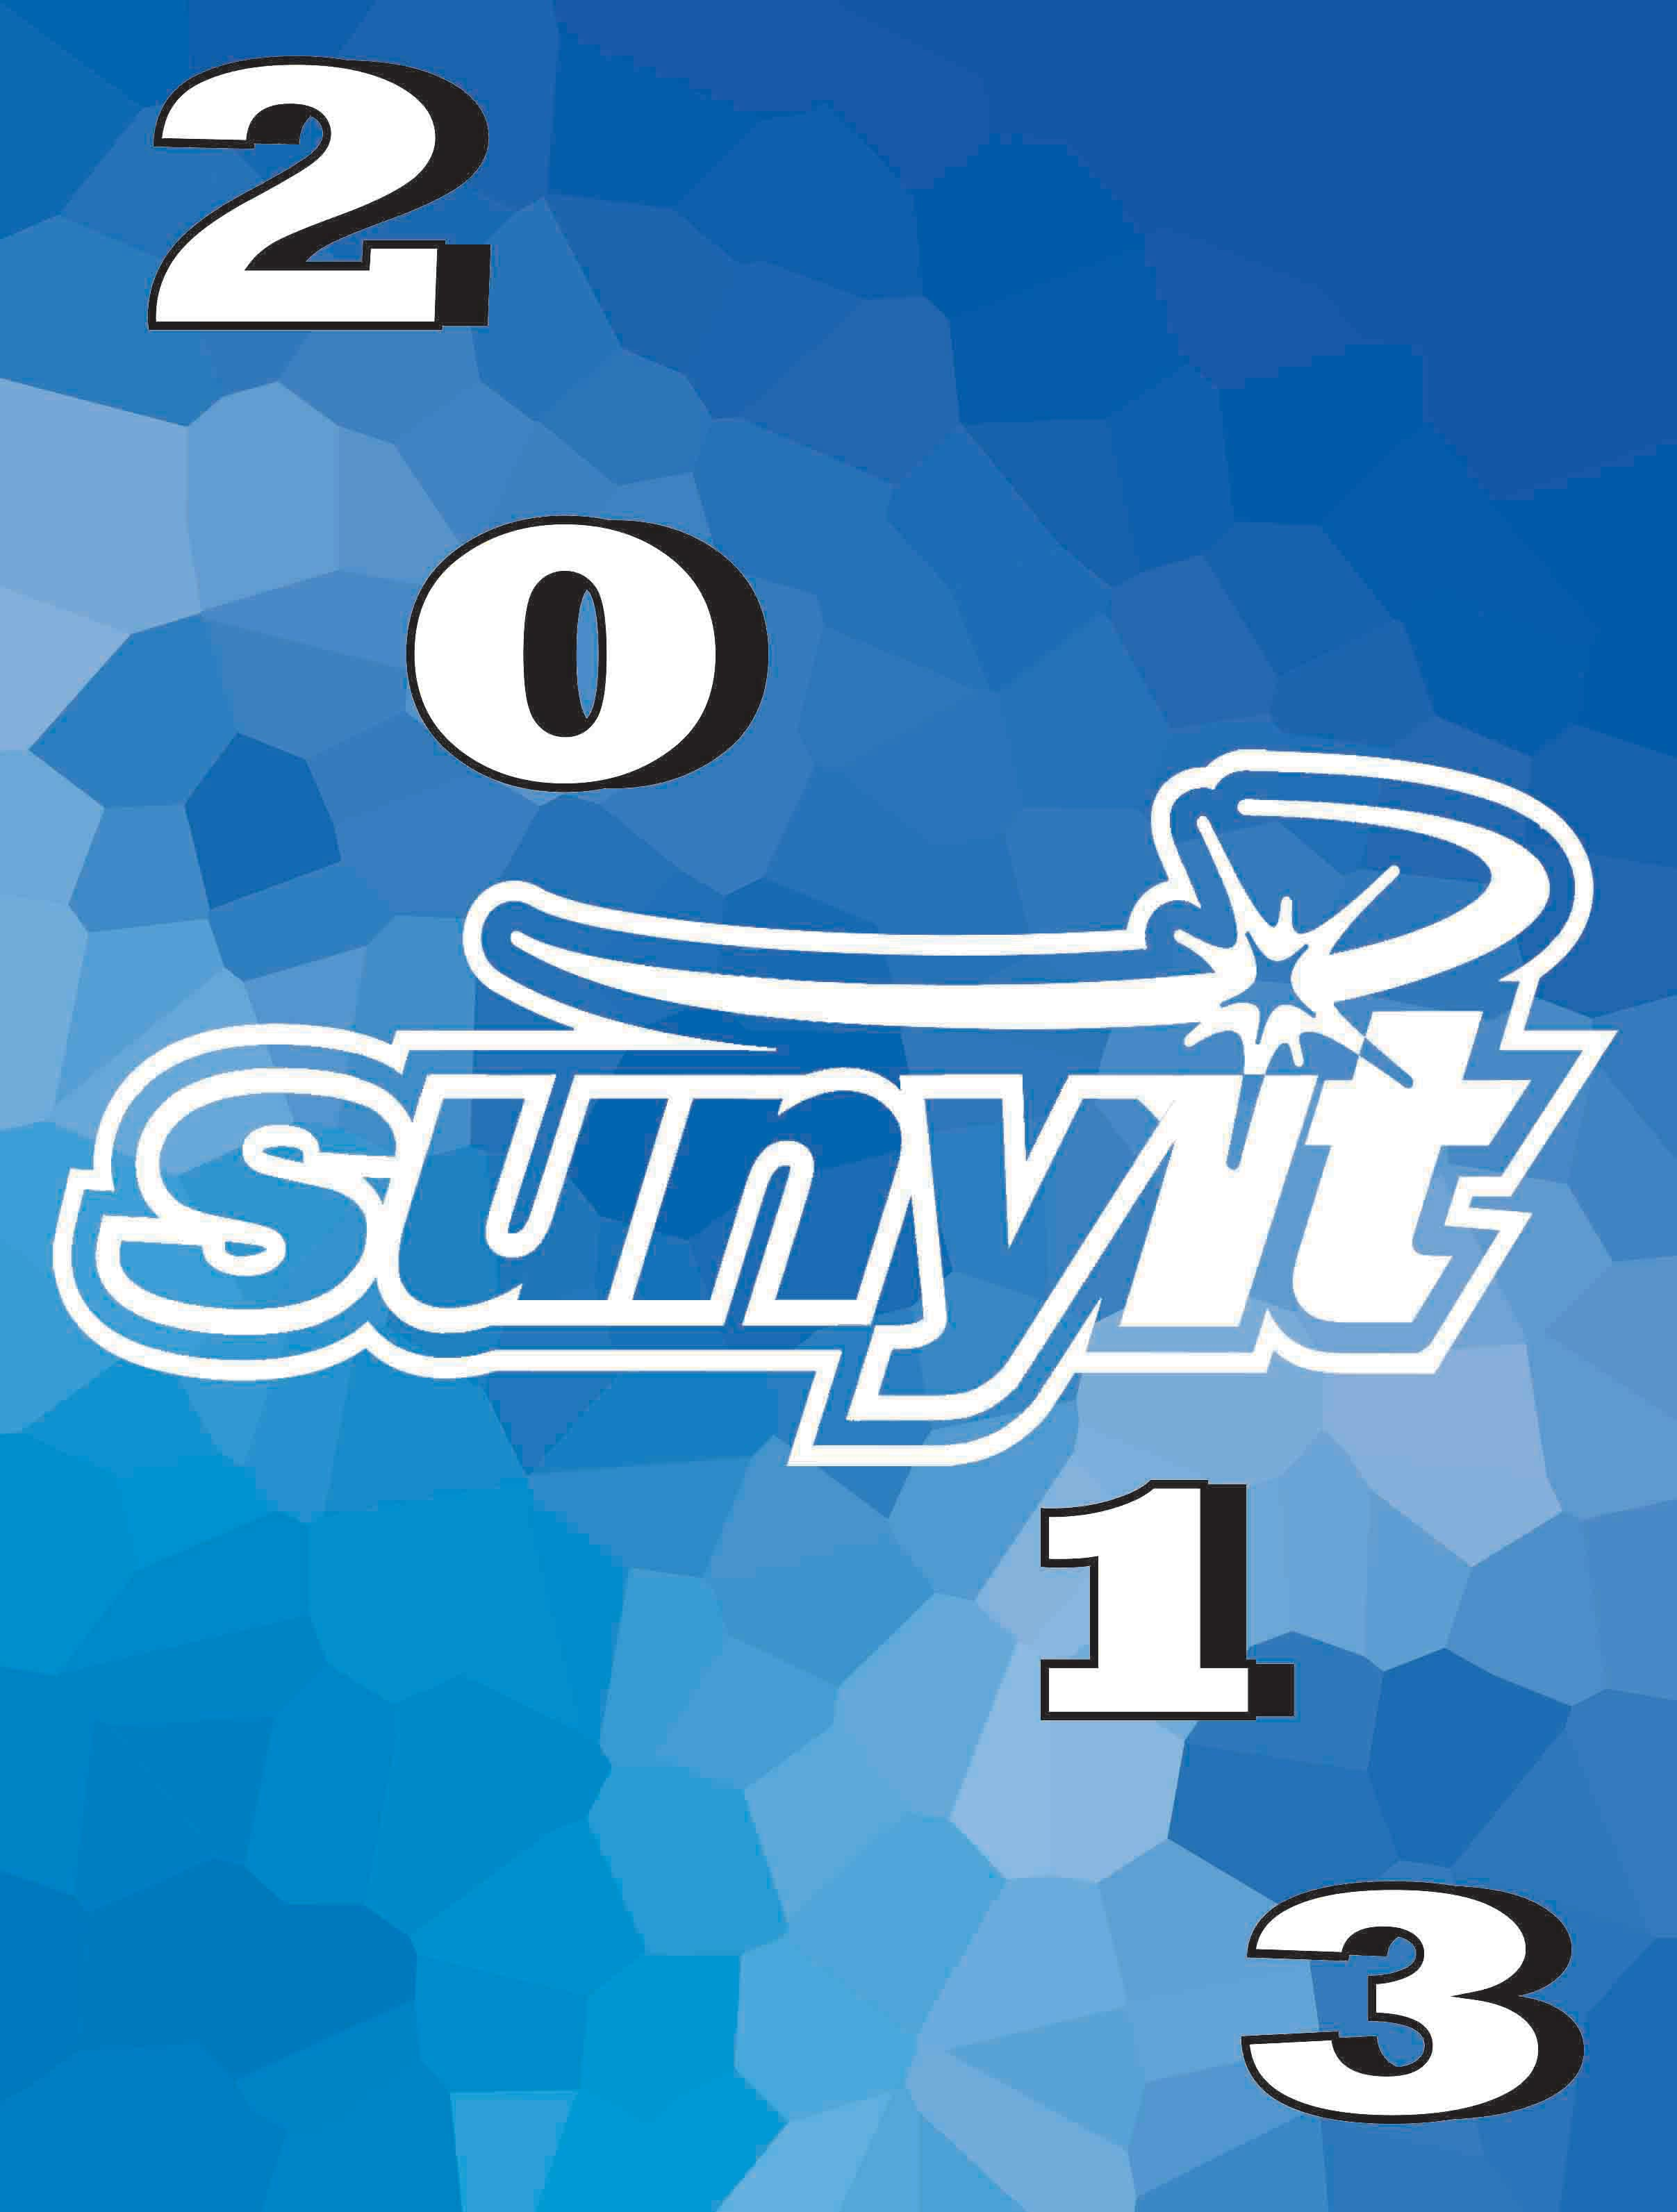 2013 SUNYIT Yearbook